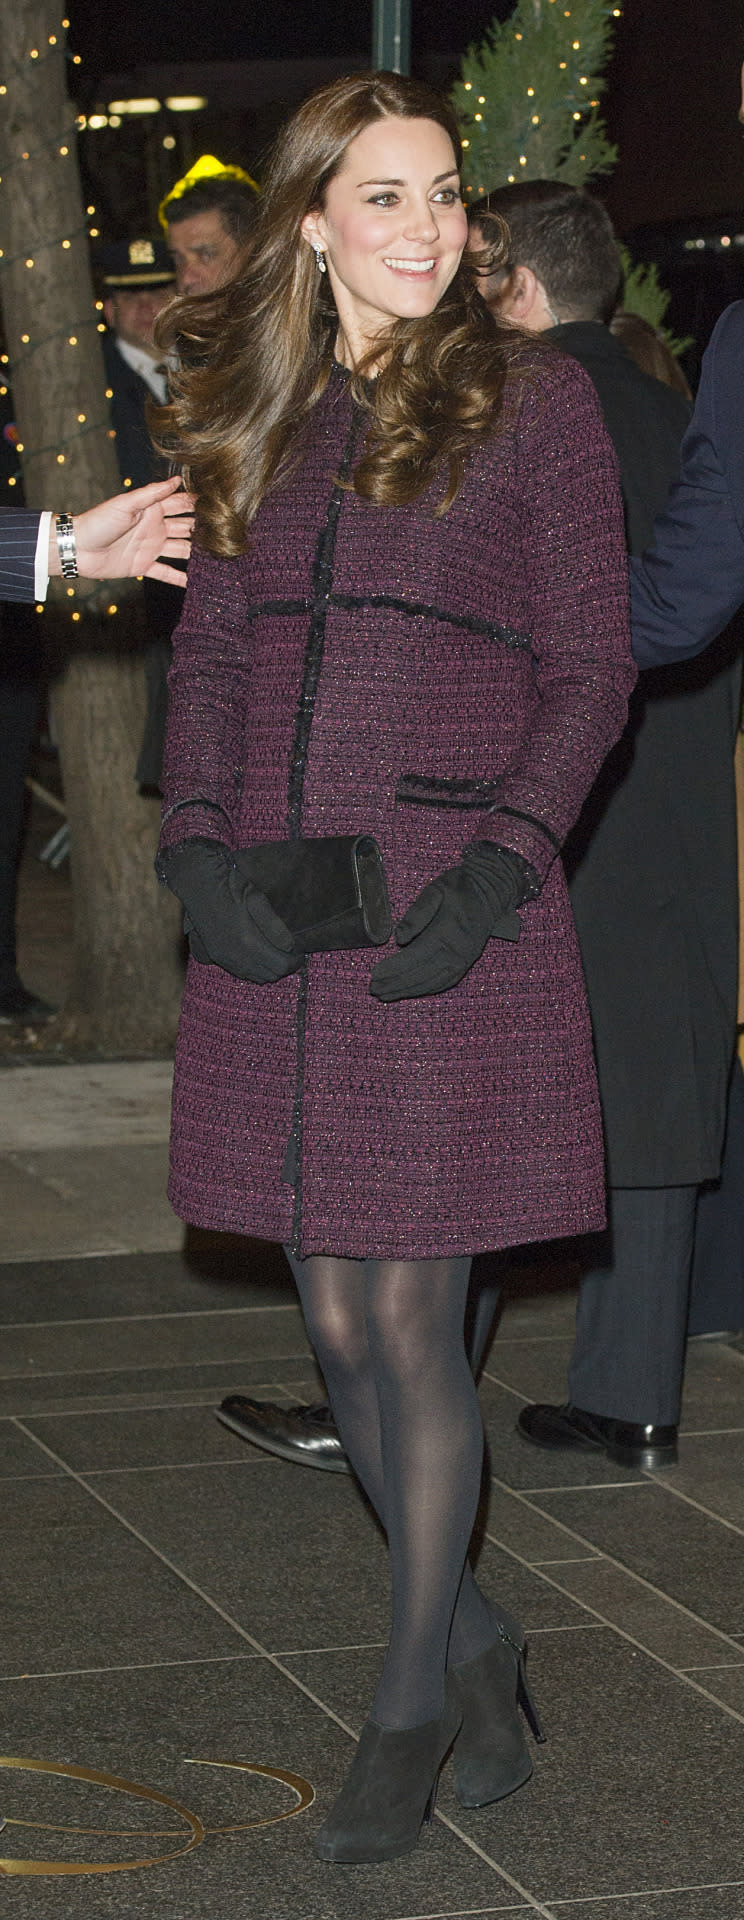 <p>Kate opted for a bouclé coat by Seraphine Maternity for her arrival in New York. She carried a black clutch by Stuart Weitzman and wore black booties and wool gloves from Cornelia James.</p><p><i>[Photo: PA]</i></p>